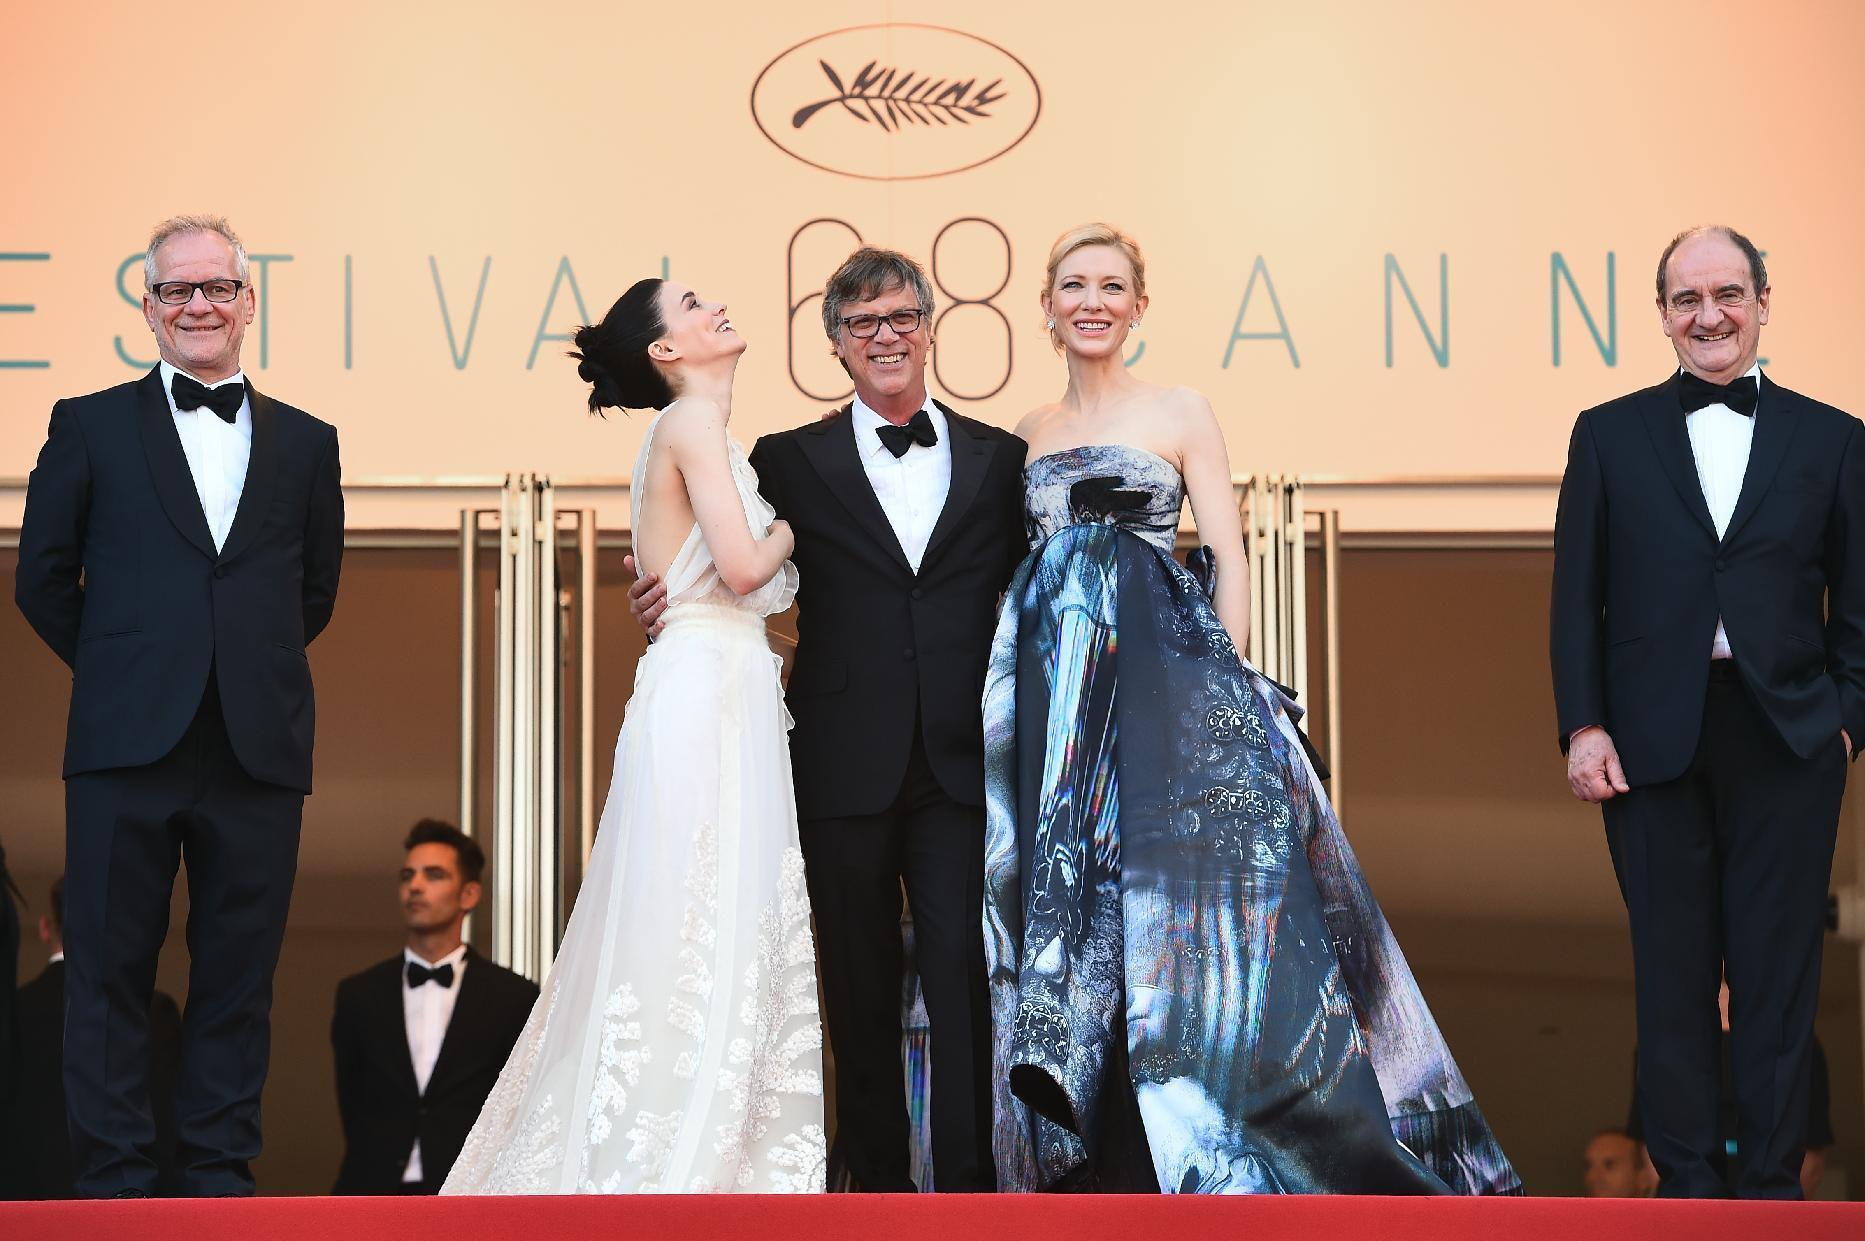 Cannes readies Palme d'Or closing ceremony